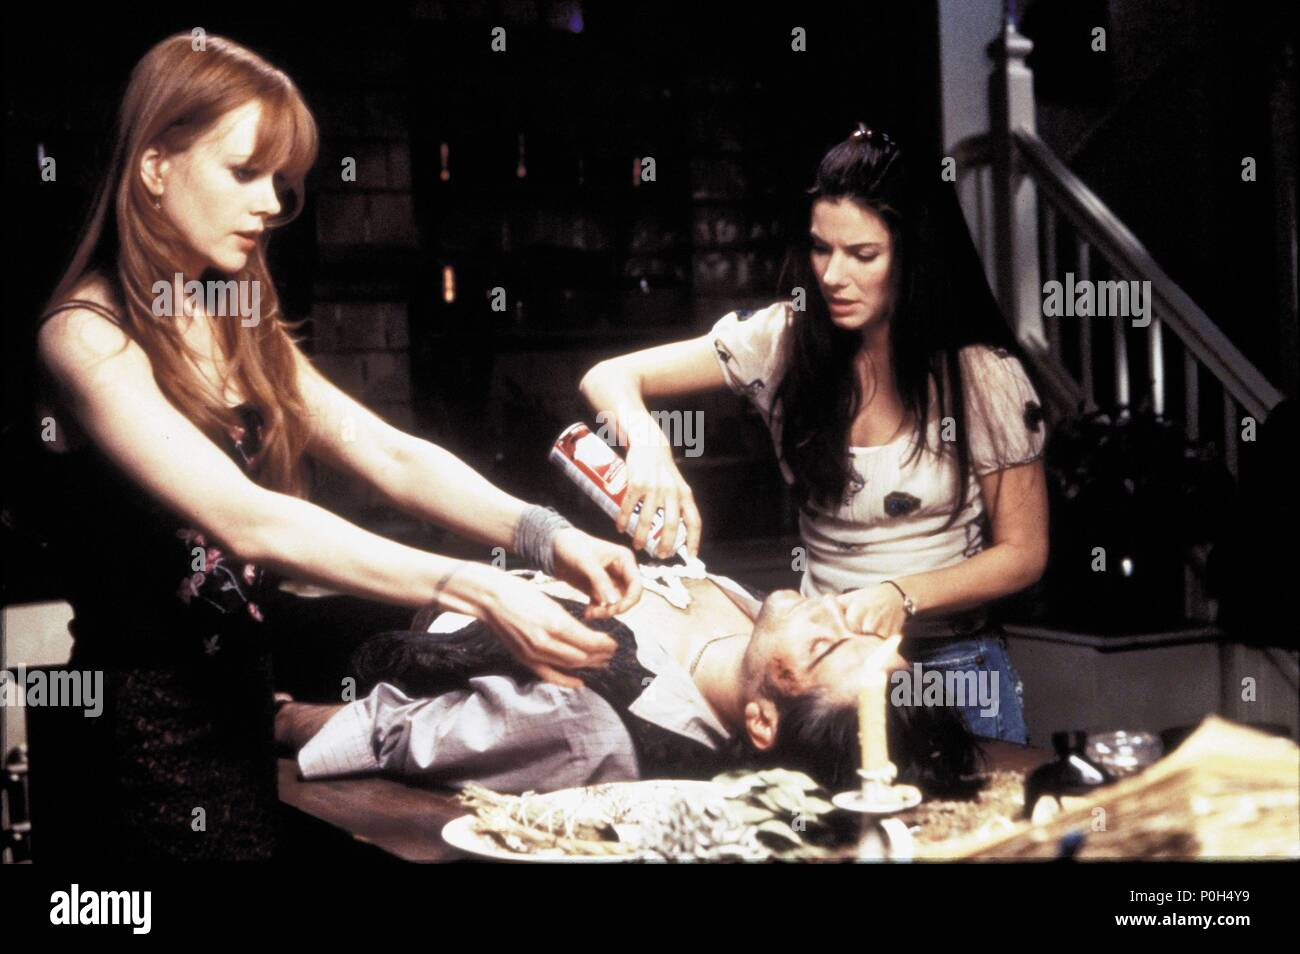 Original Film Title: PRACTICAL MAGIC.  English Title: PRACTICAL MAGIC.  Film Director: GRIFFIN DUNNE.  Year: 1998.  Stars: SAHNE; NICOLE KIDMAN; SANDRA BULLOCK; GORAN VISNJIC. Credit: WARNER BROTHERS / TENNER, SUZANNE / Album - Stock Image